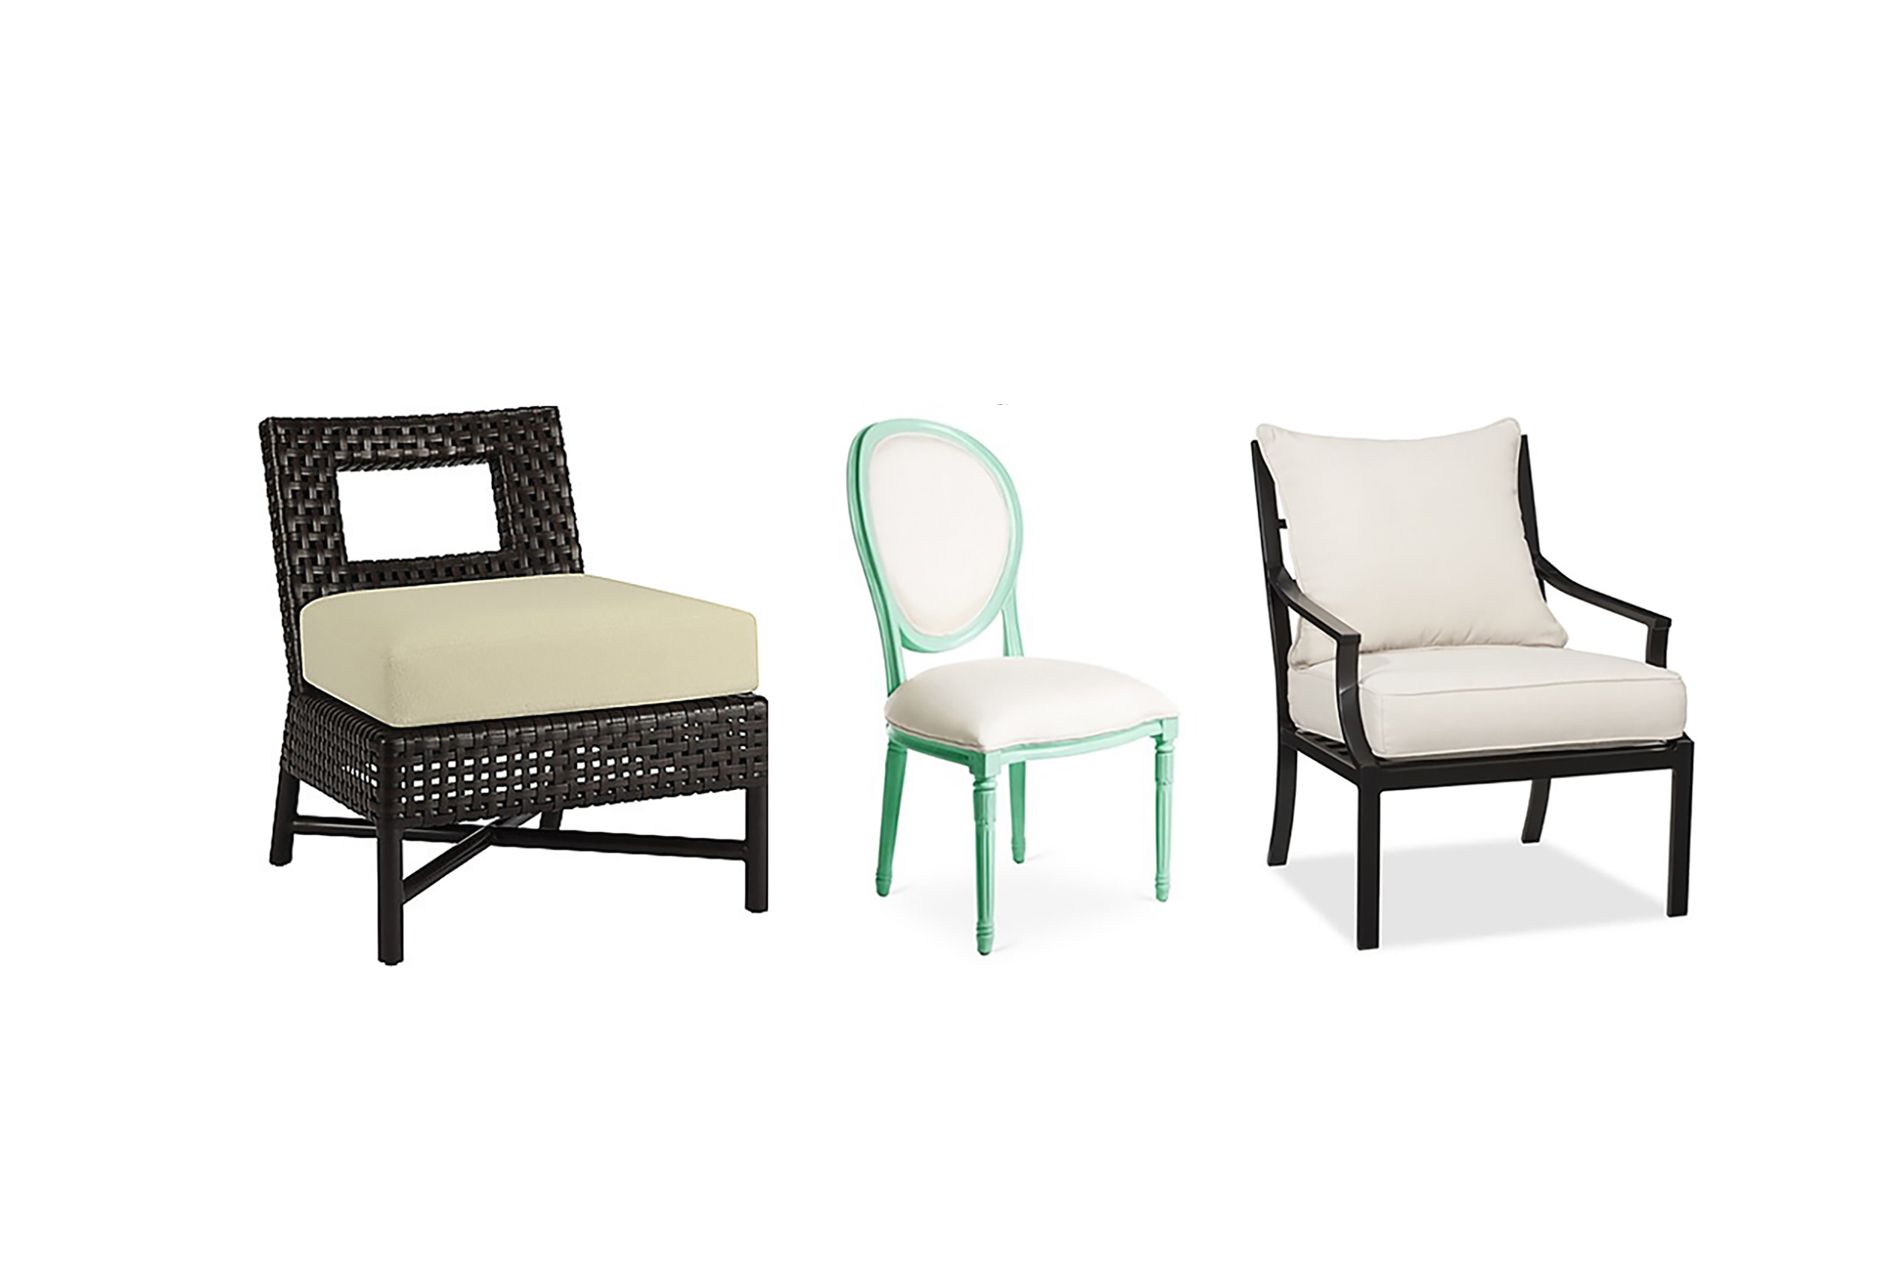 30 Best Garden Chairs Stylish Outdoor Seating for Gardens